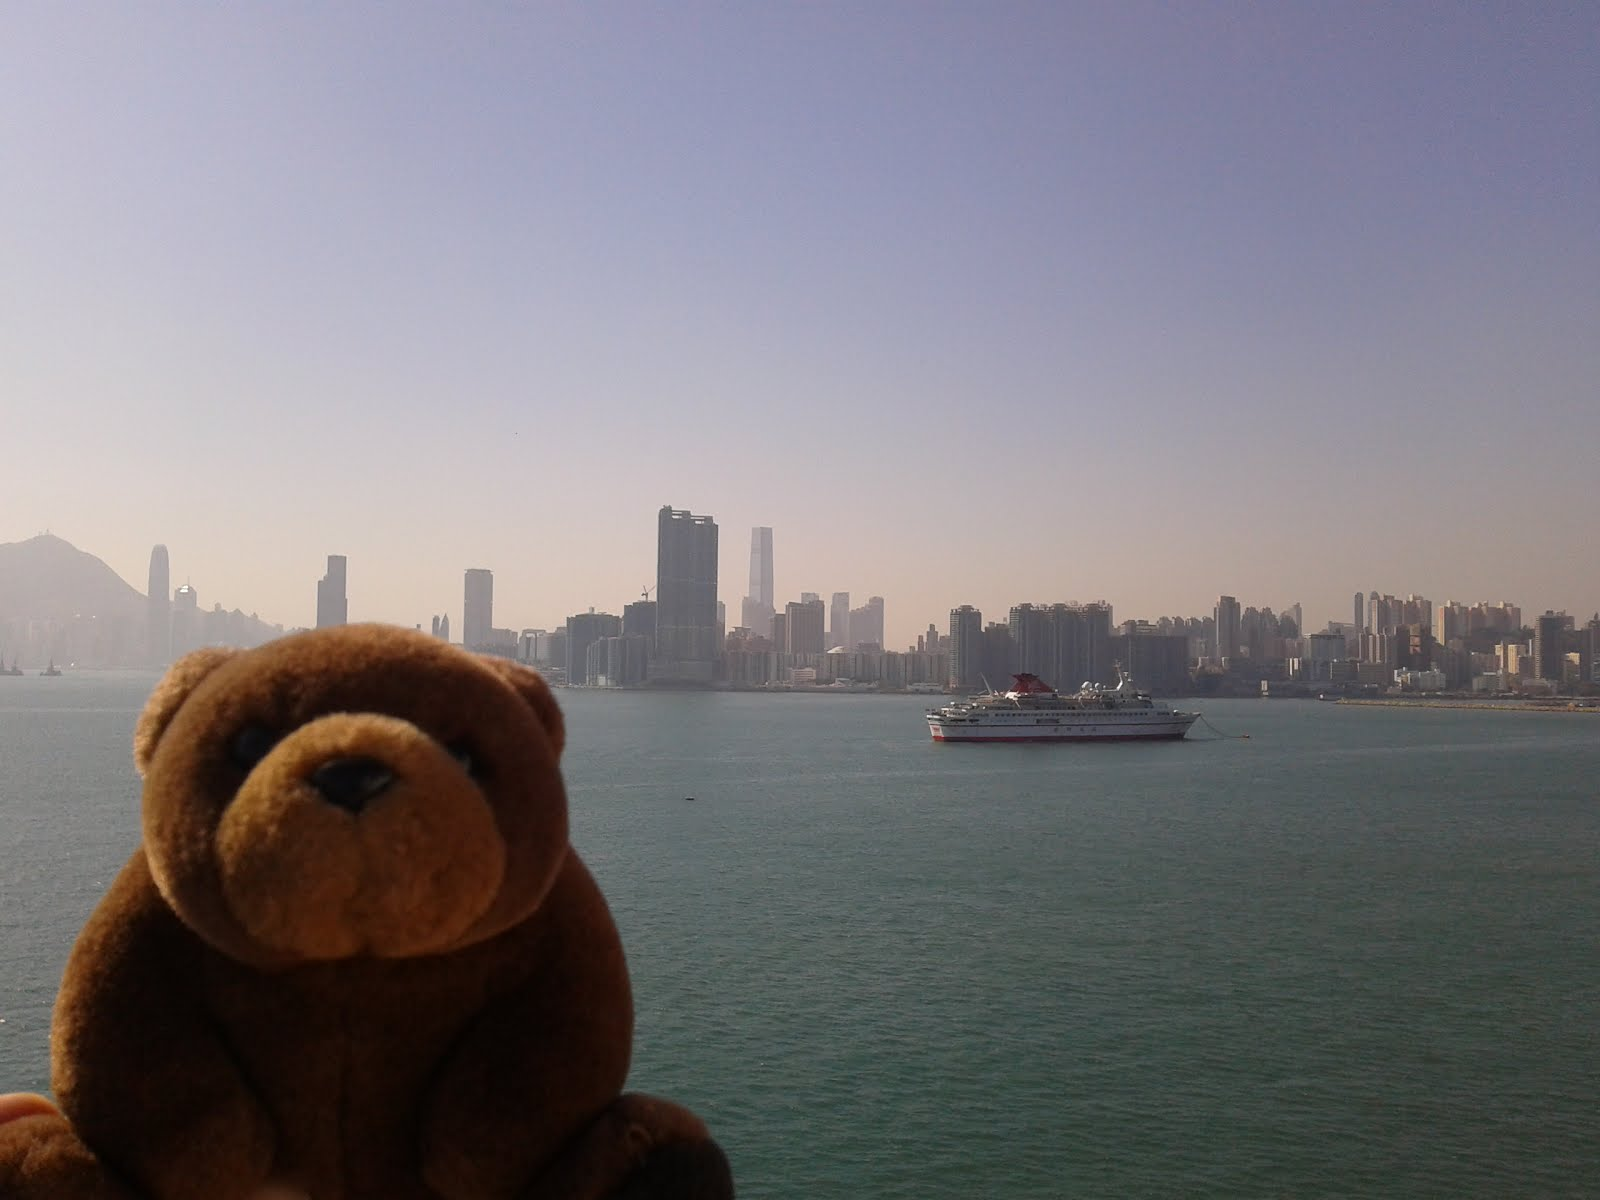 Teddy Bear in Hong Kong